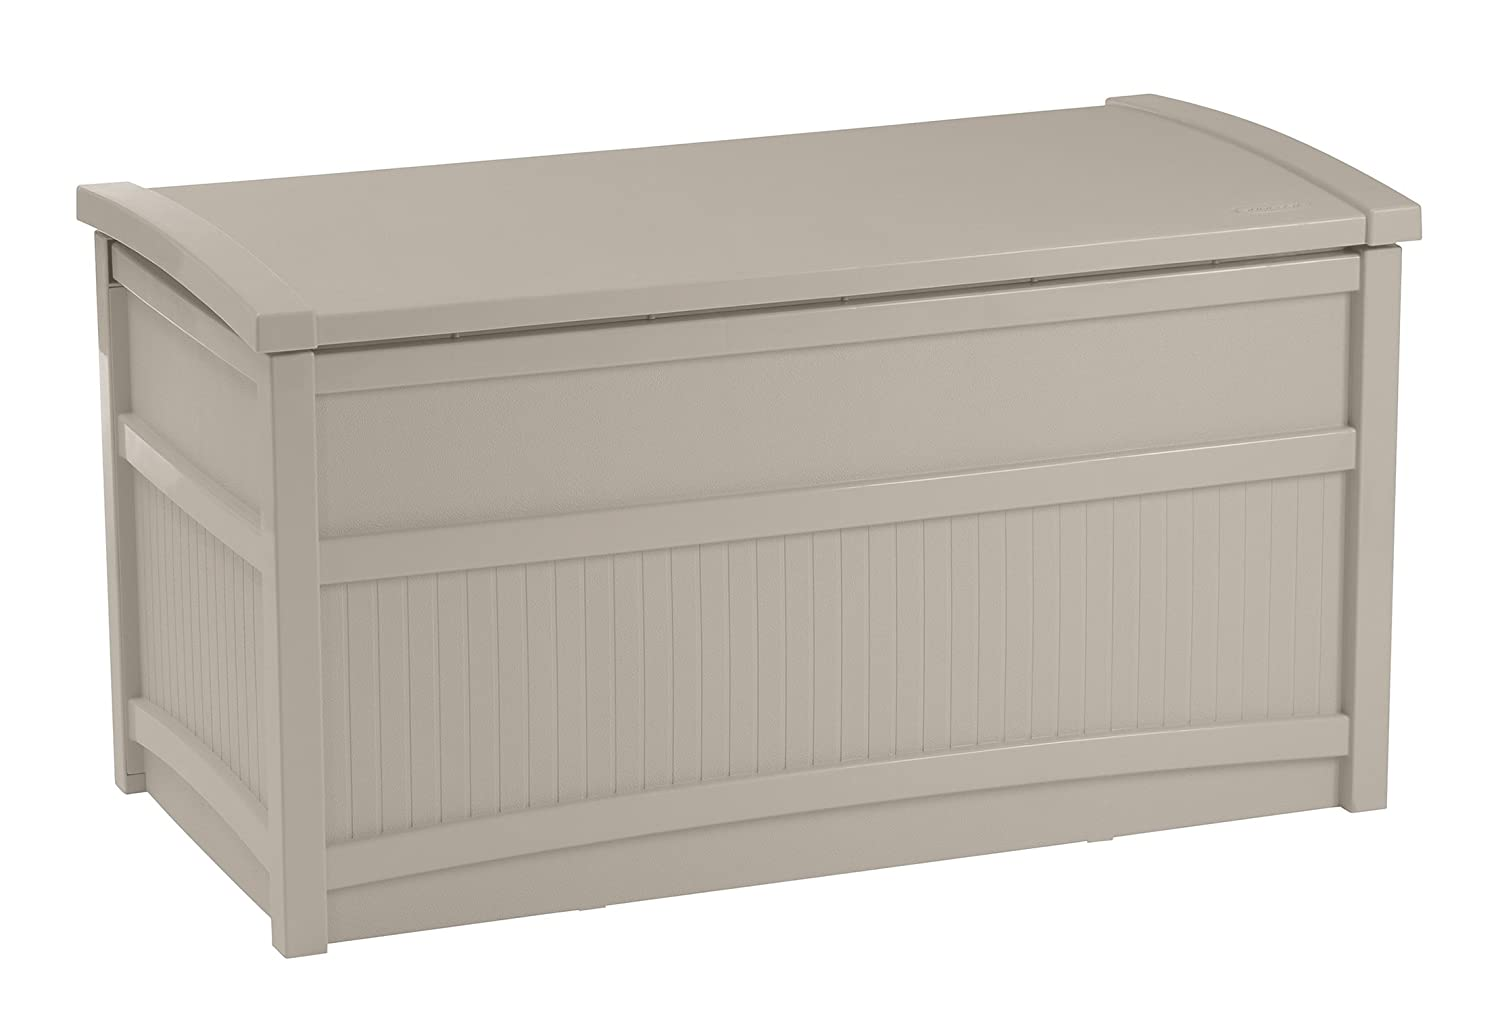 Suncast DB5000 Deck Box, 50-Gallon